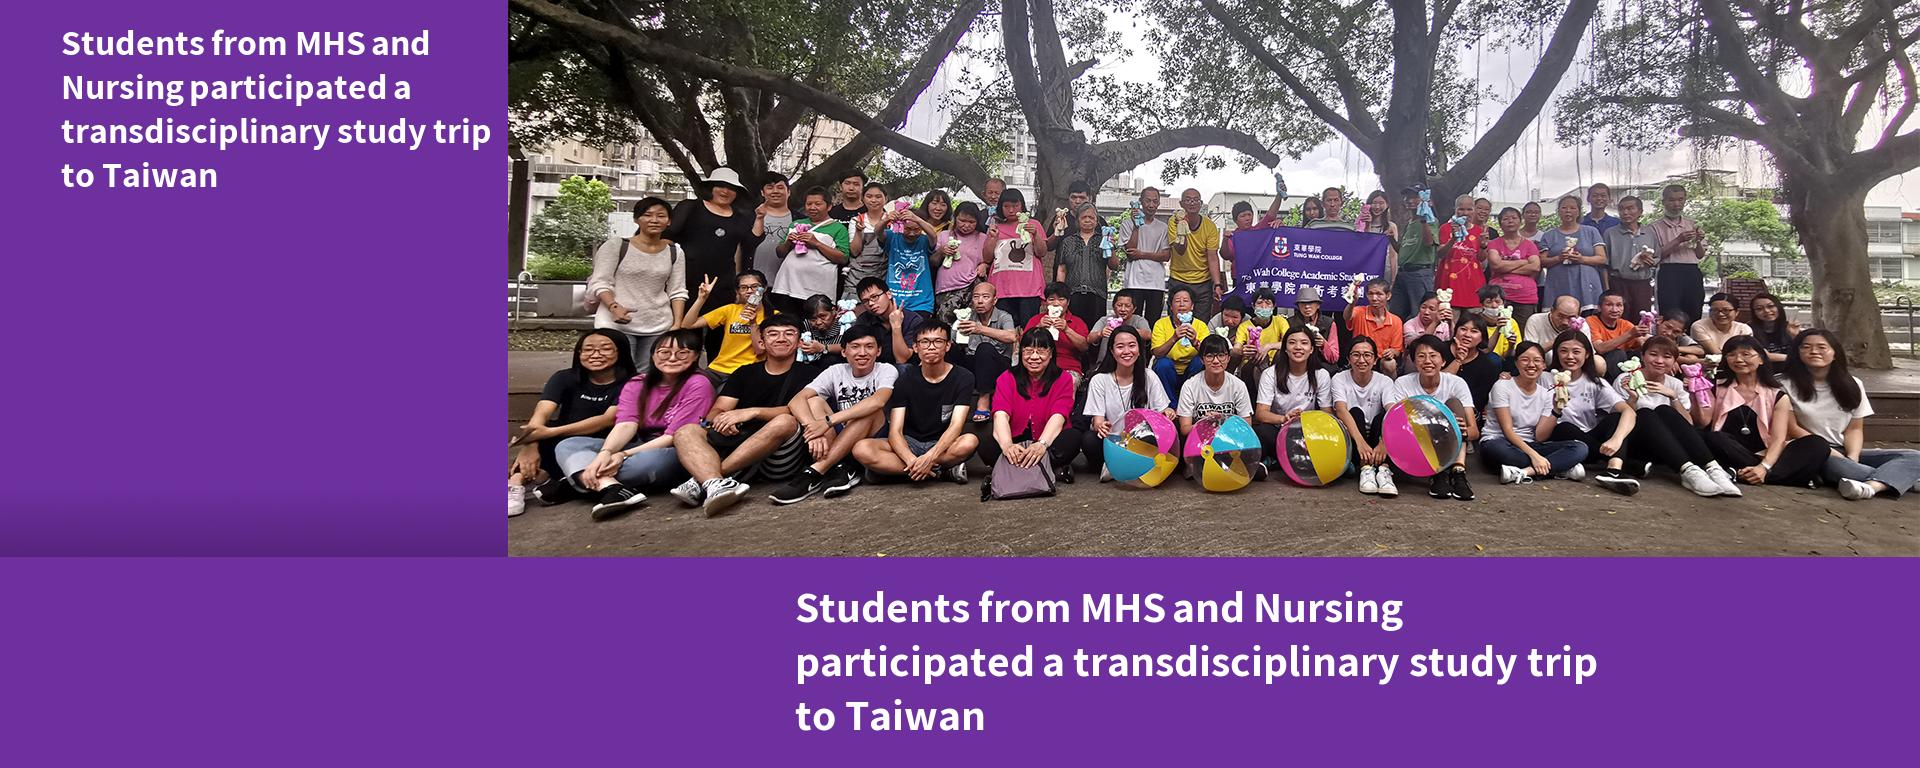 Students from MHS and Nursing participated a transdisciplinary study trip to Taiwan